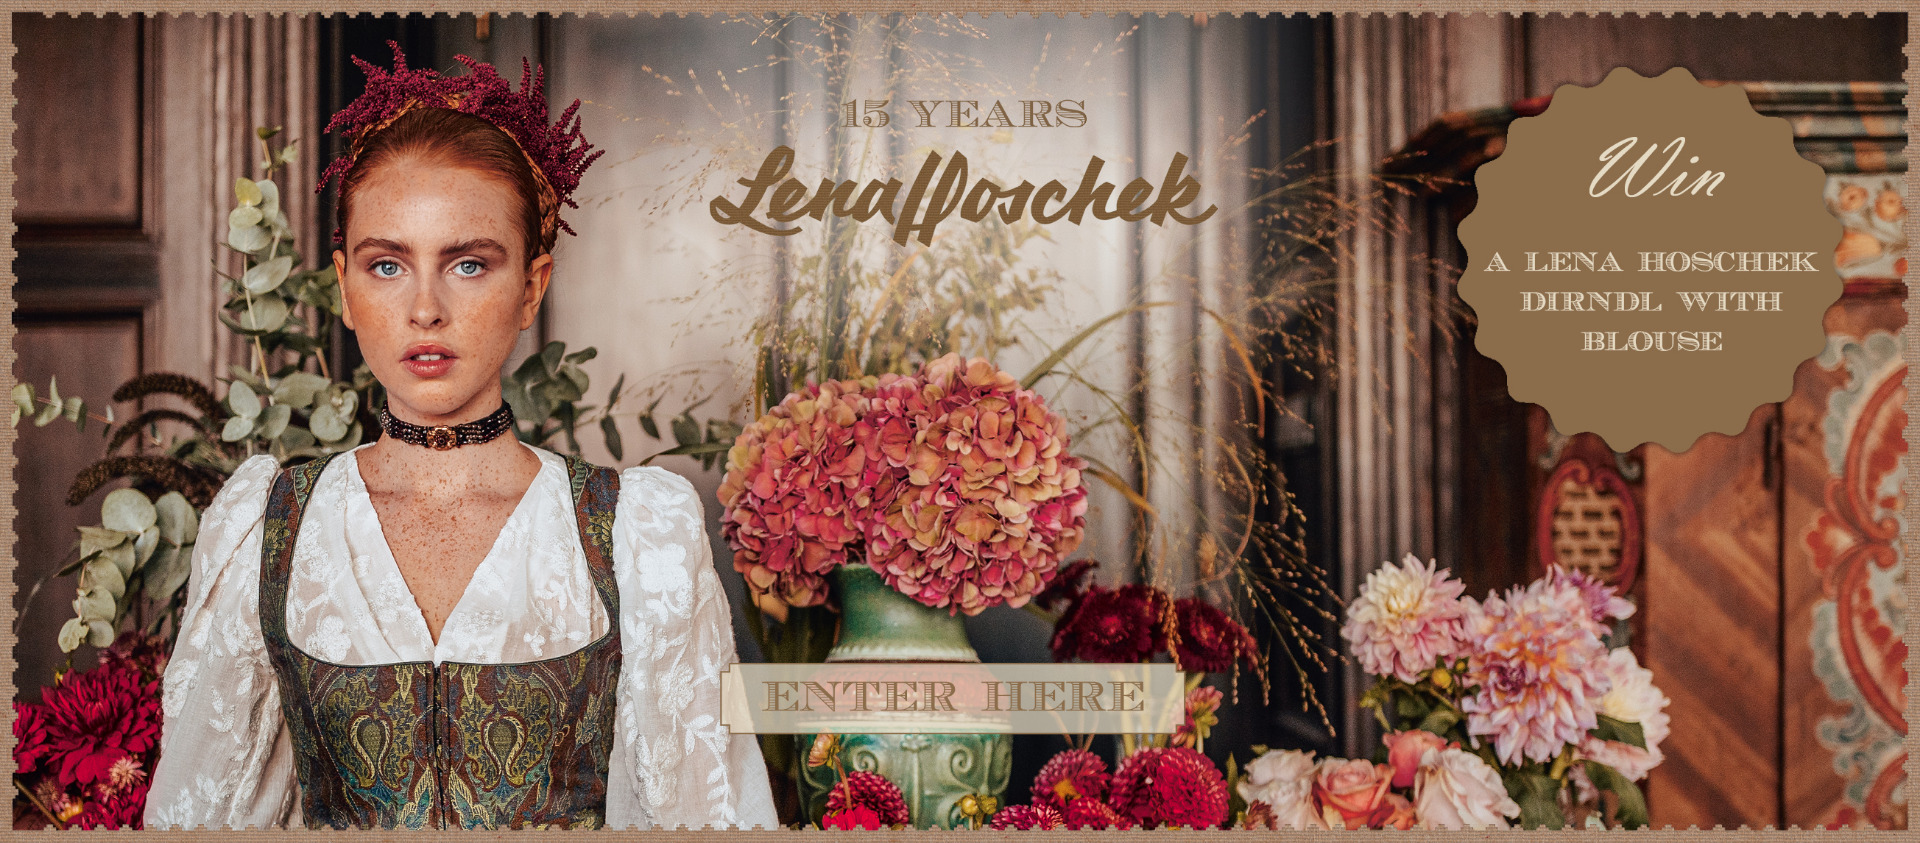 Win a Dirndl with Blouse by Lena Hoschek